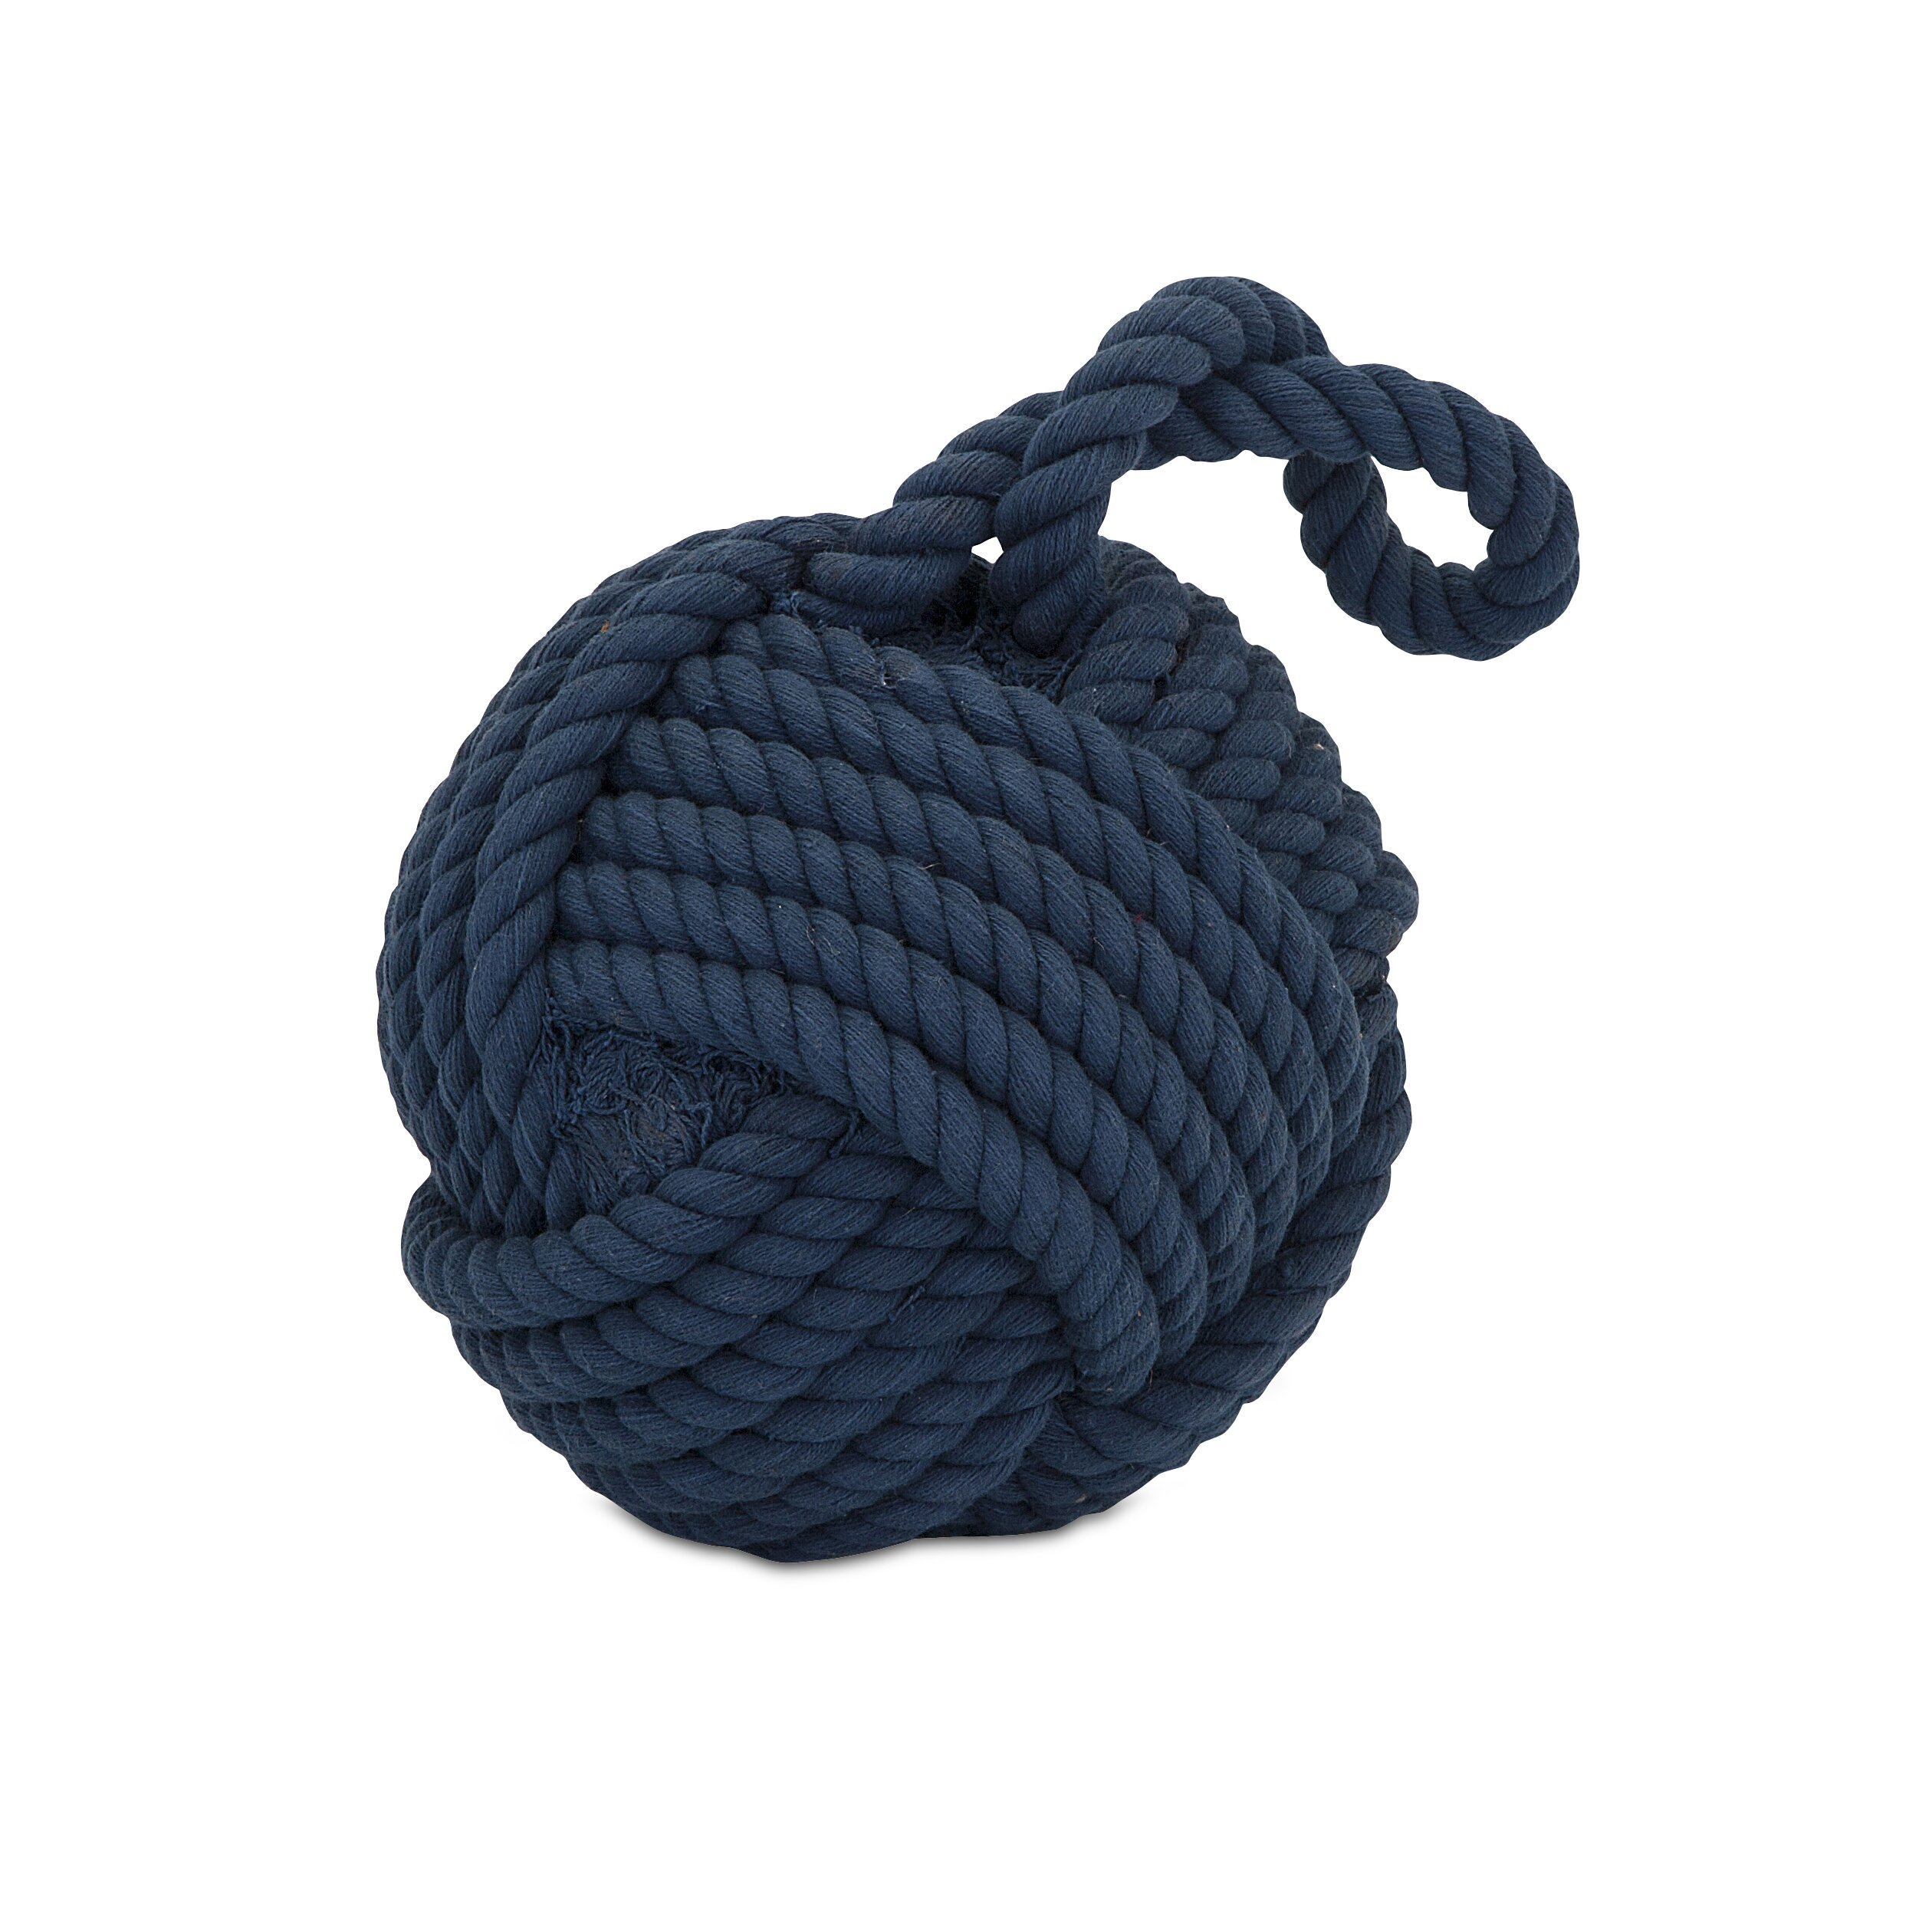 Breakwater Bay Decorative Nautical Rope Ball & Reviews. Decorative Pillow Covers. Large Decorative Vases. Decorative Wooden Sleigh. Over The Bed Wall Decor. Gray Baby Room. Operating Room Lights. Contemporary Wall Decor. Restaurant Decor Ideas